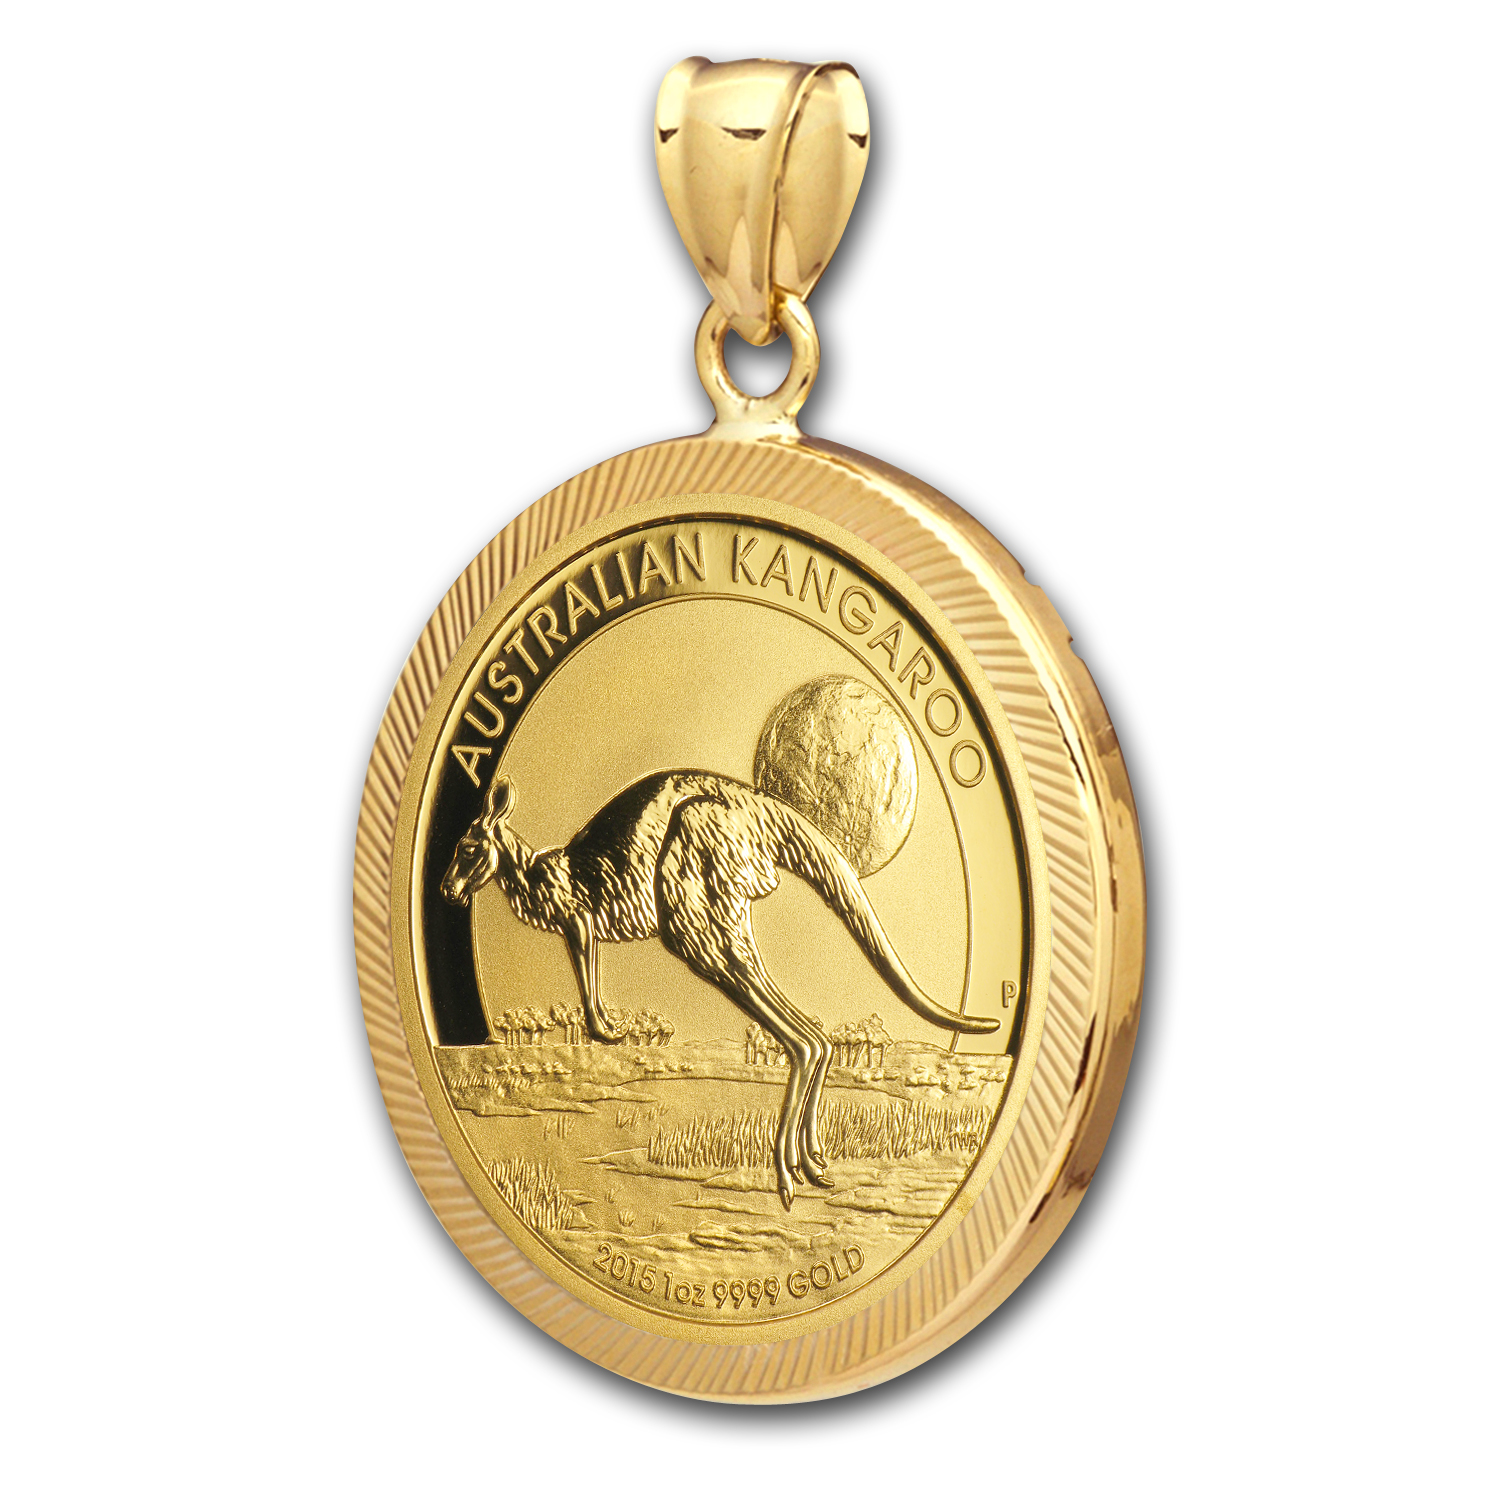 2015 1 oz Gold Kangaroo Pendant (Diamond-Prong Bezel)